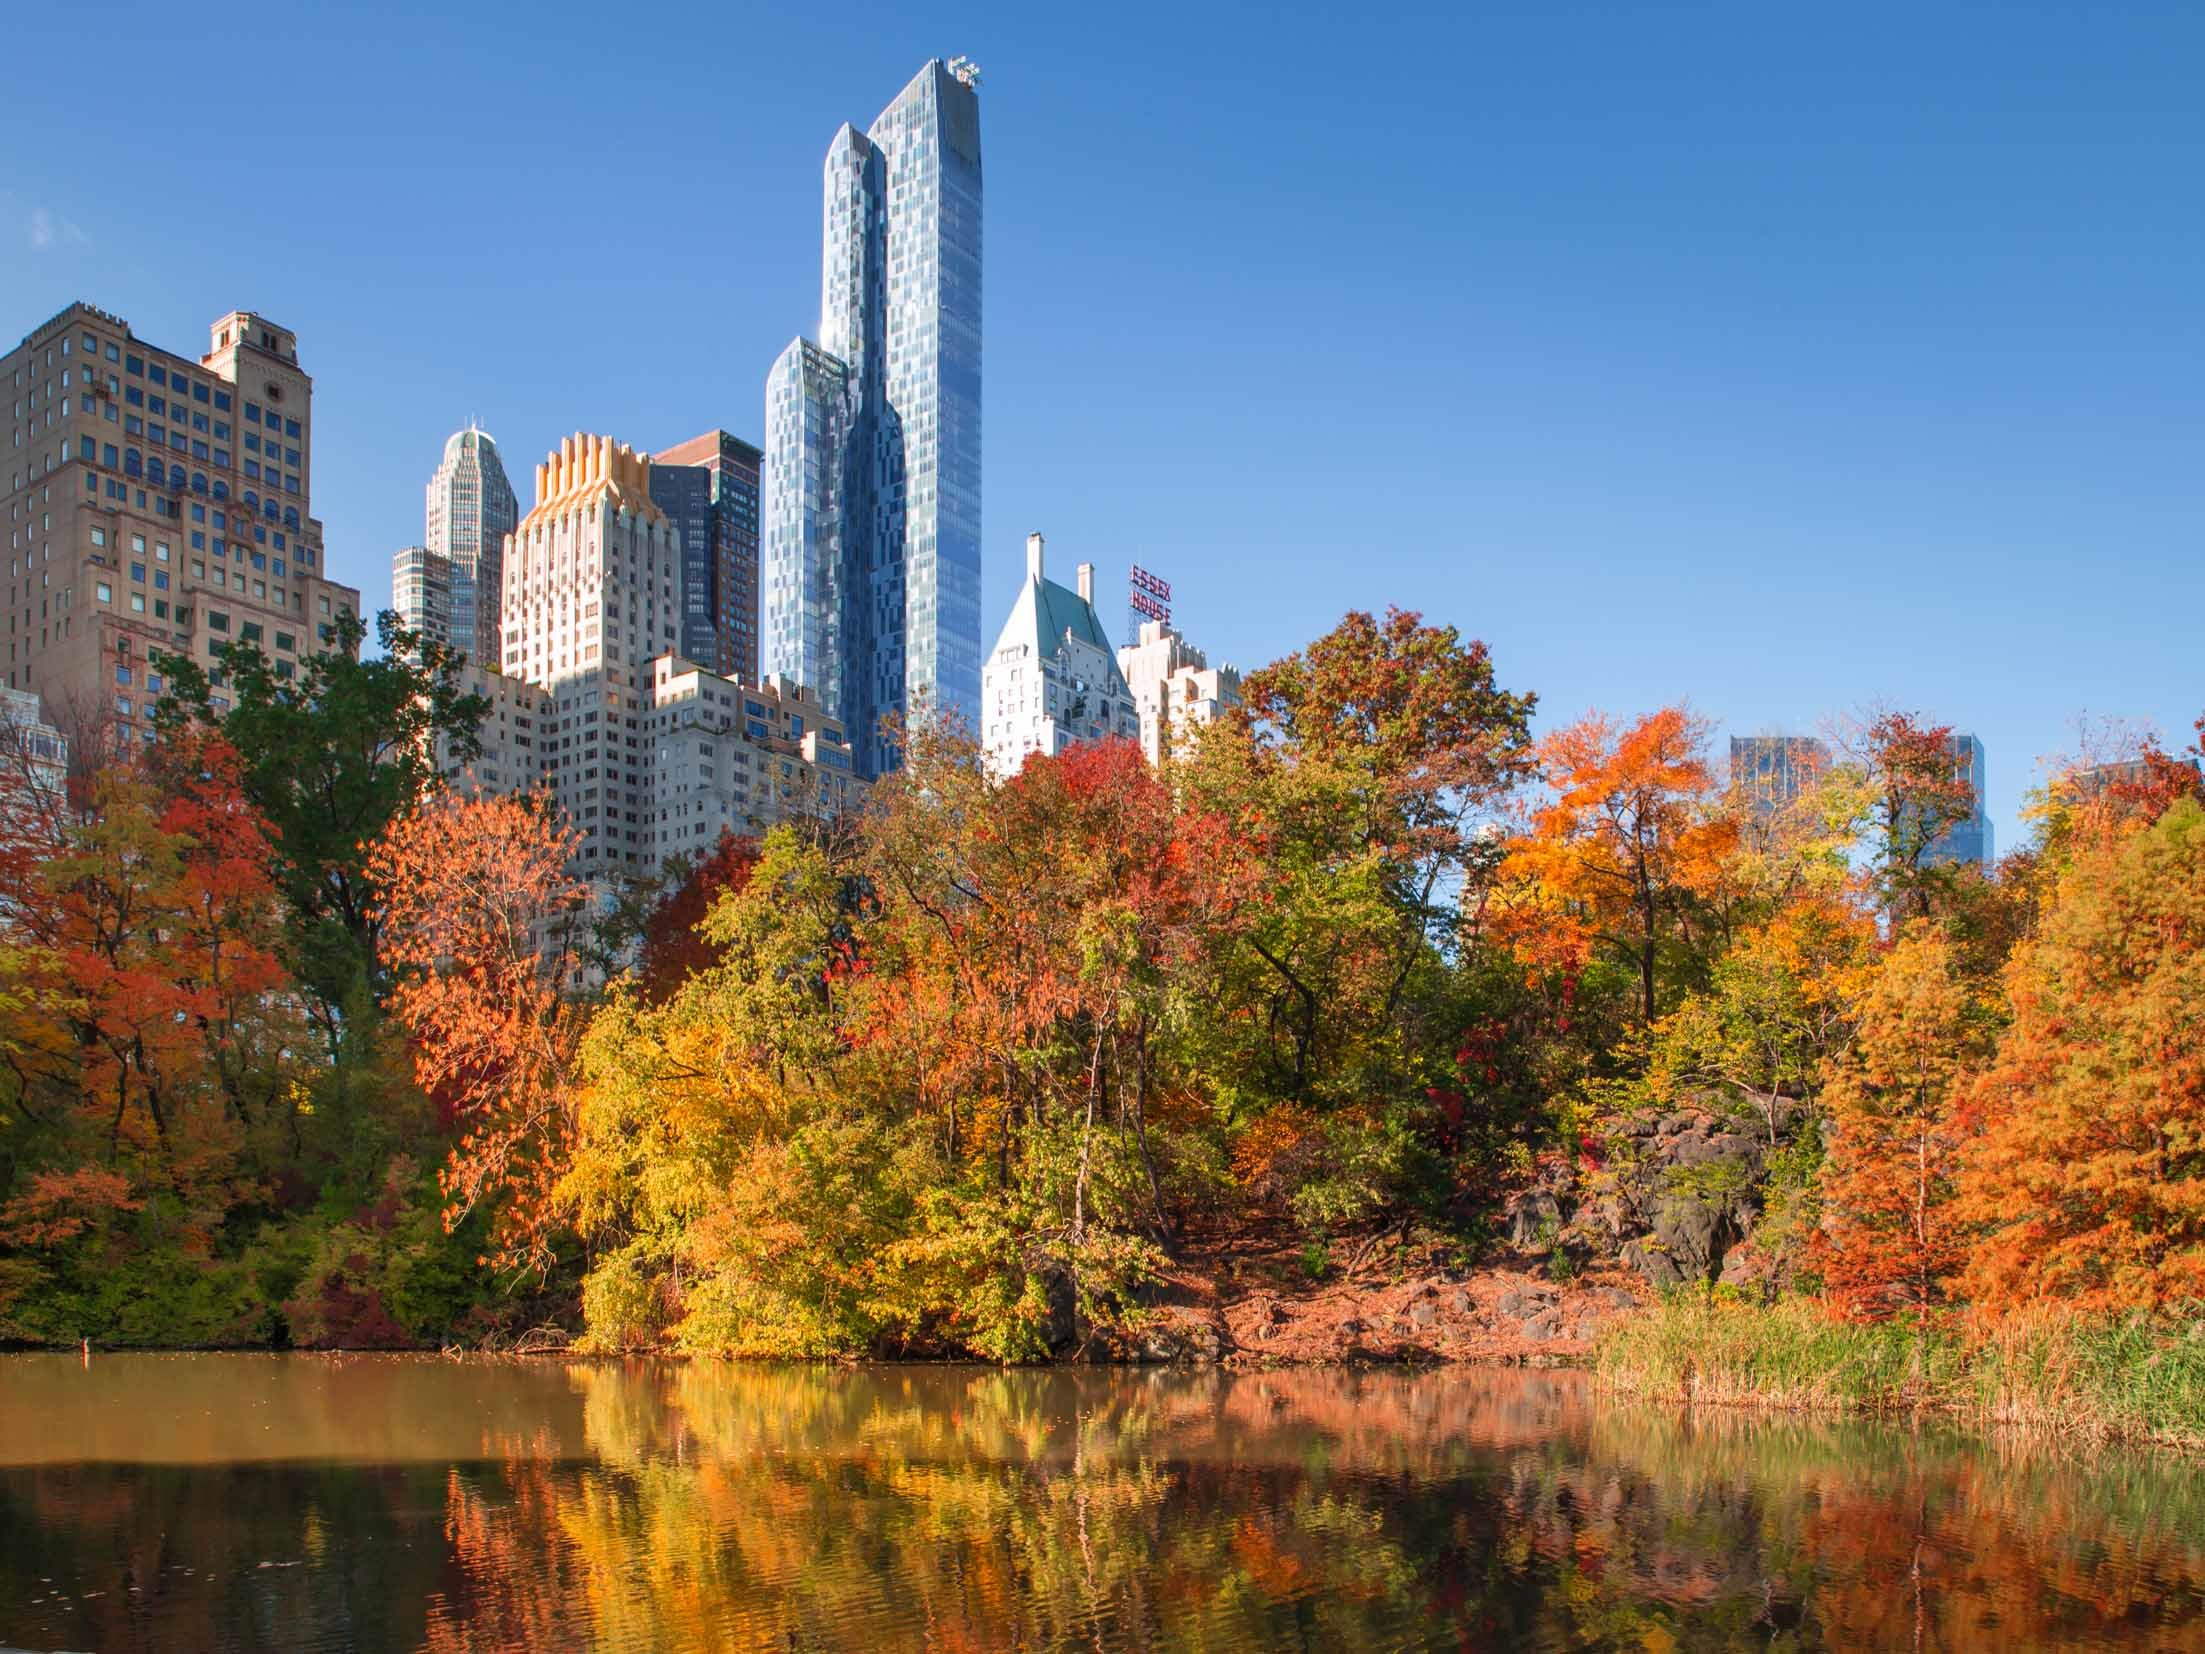 25 ways to still have an amazing fall in NYC